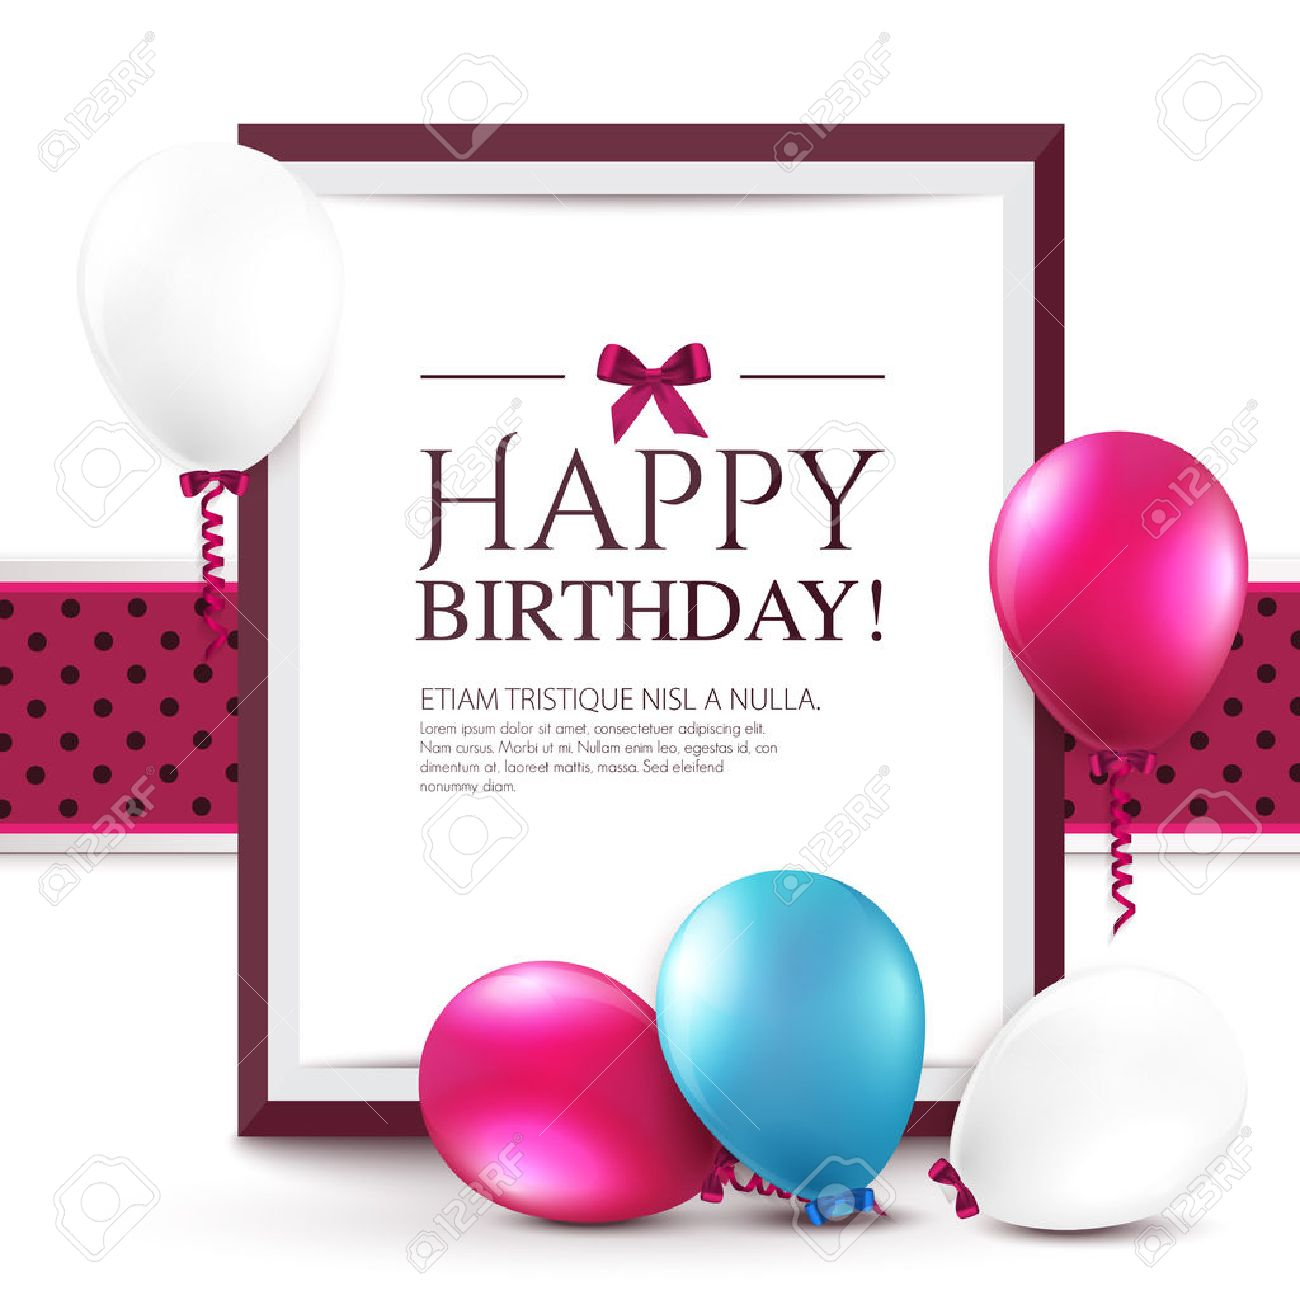 Birthday card with balloons and frame royalty free cliparts birthday card with balloons and frame stock vector 24664015 bookmarktalkfo Image collections